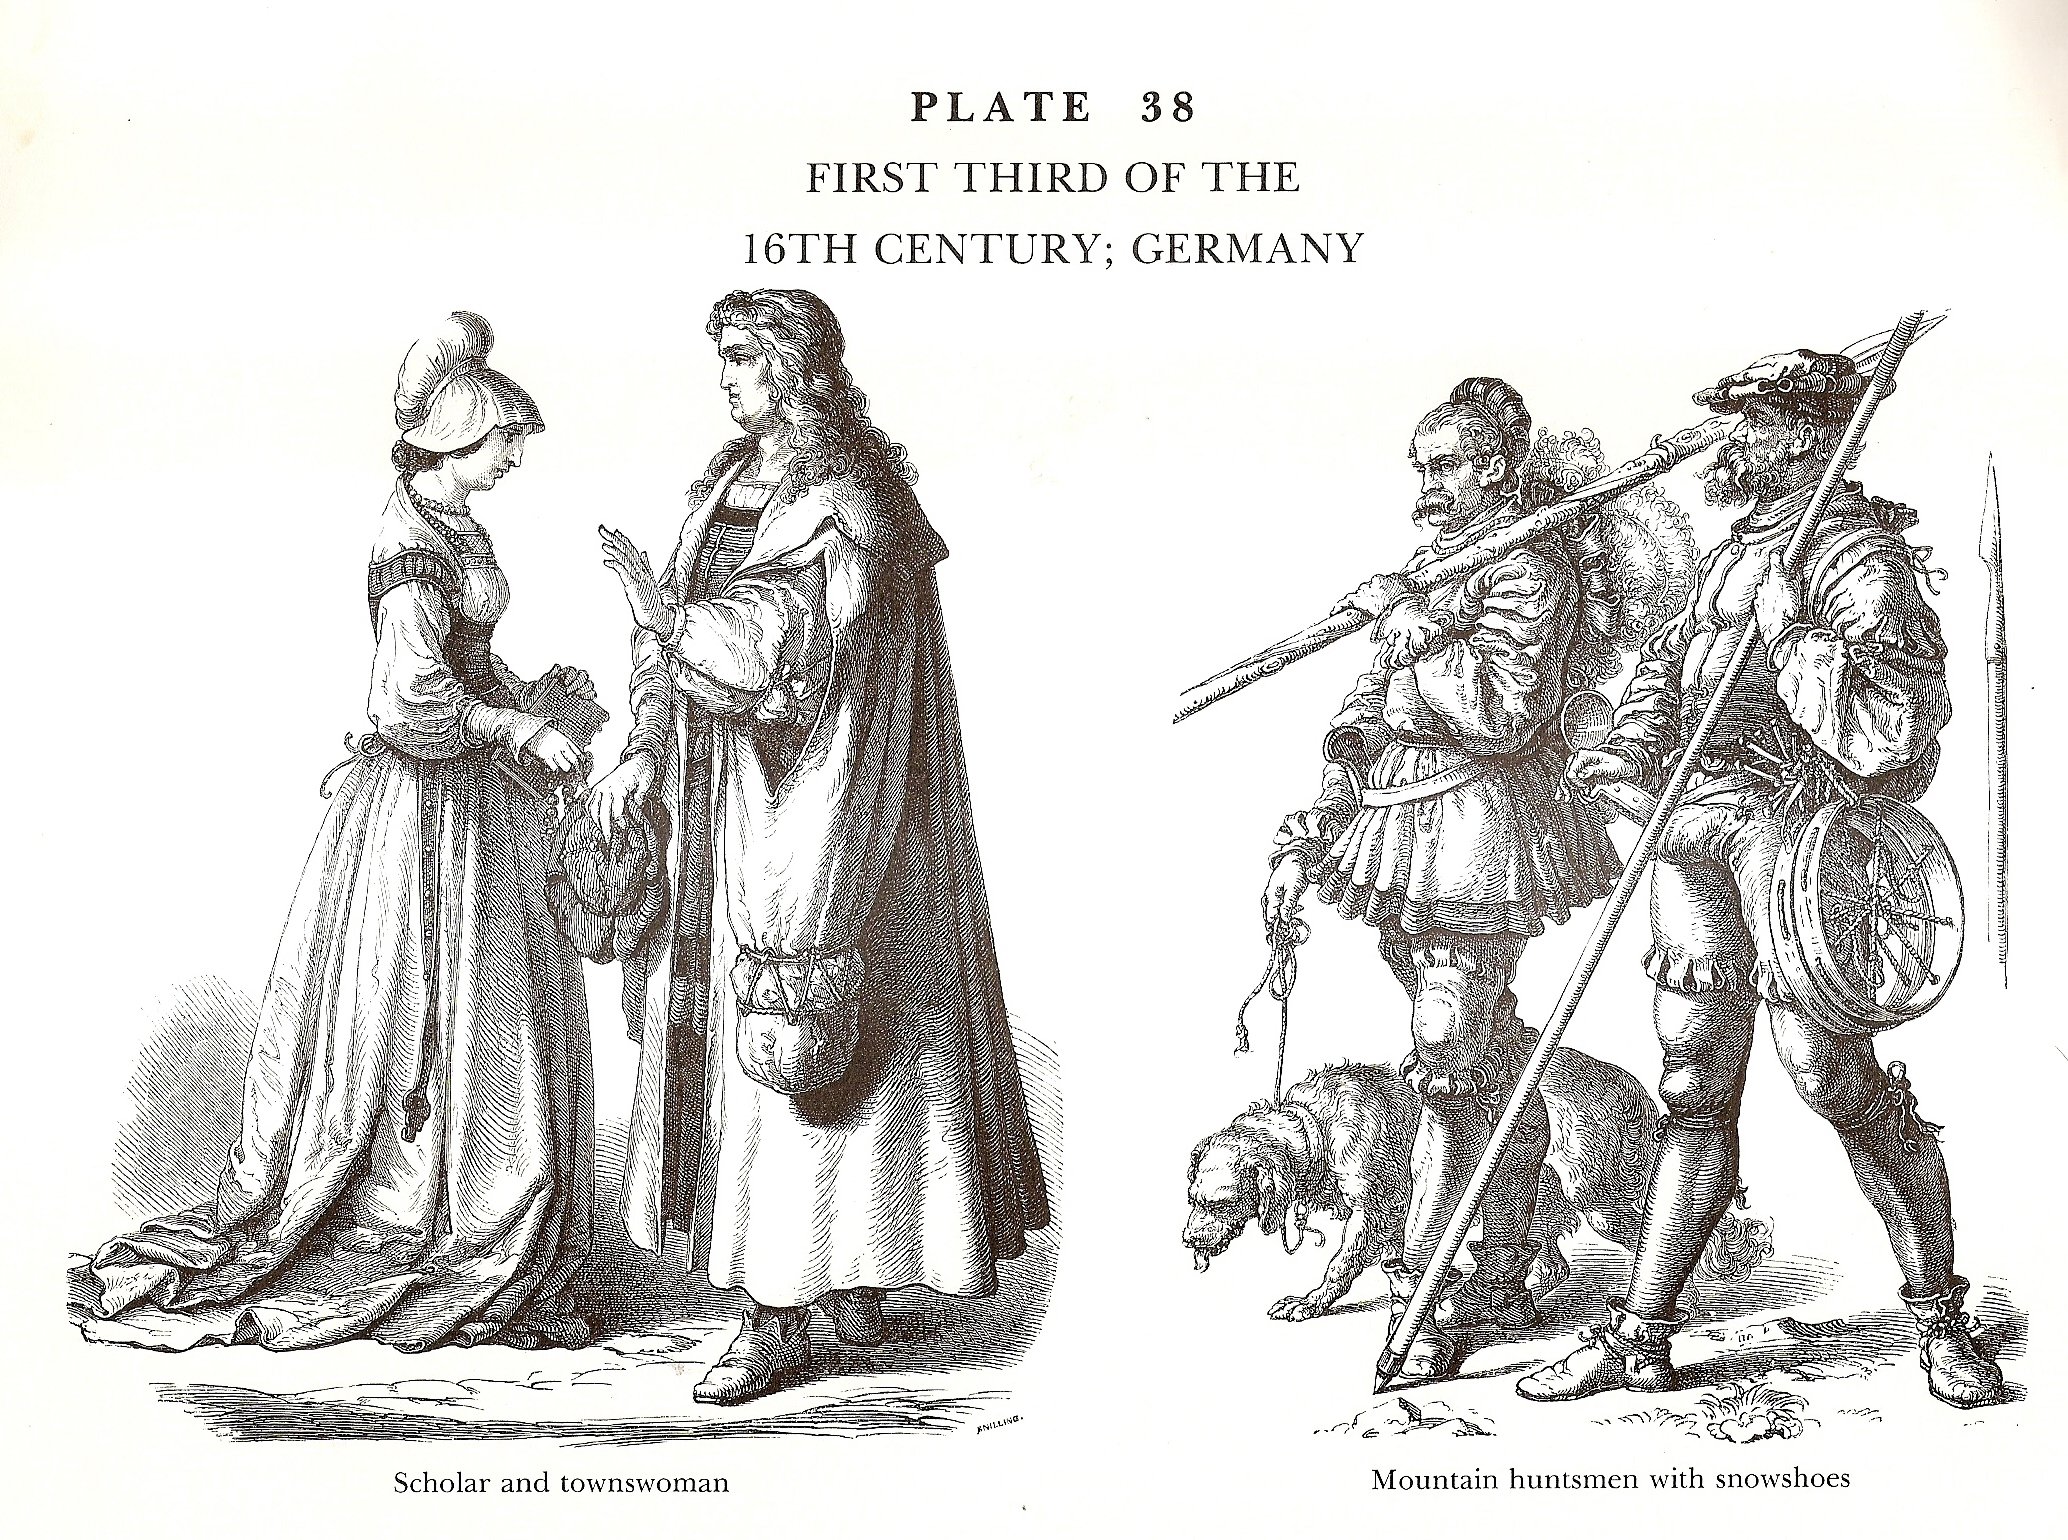 First Third of the 16th Century Germany